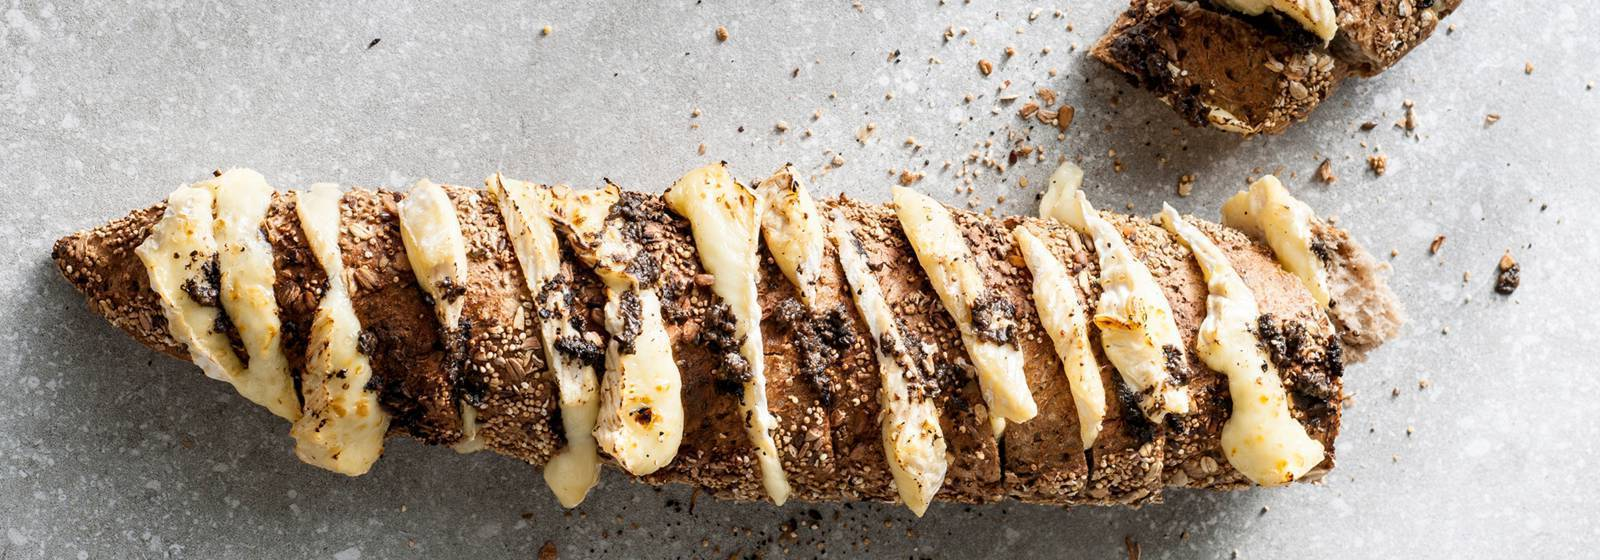 Hasselback stick bread with camembert and truffle